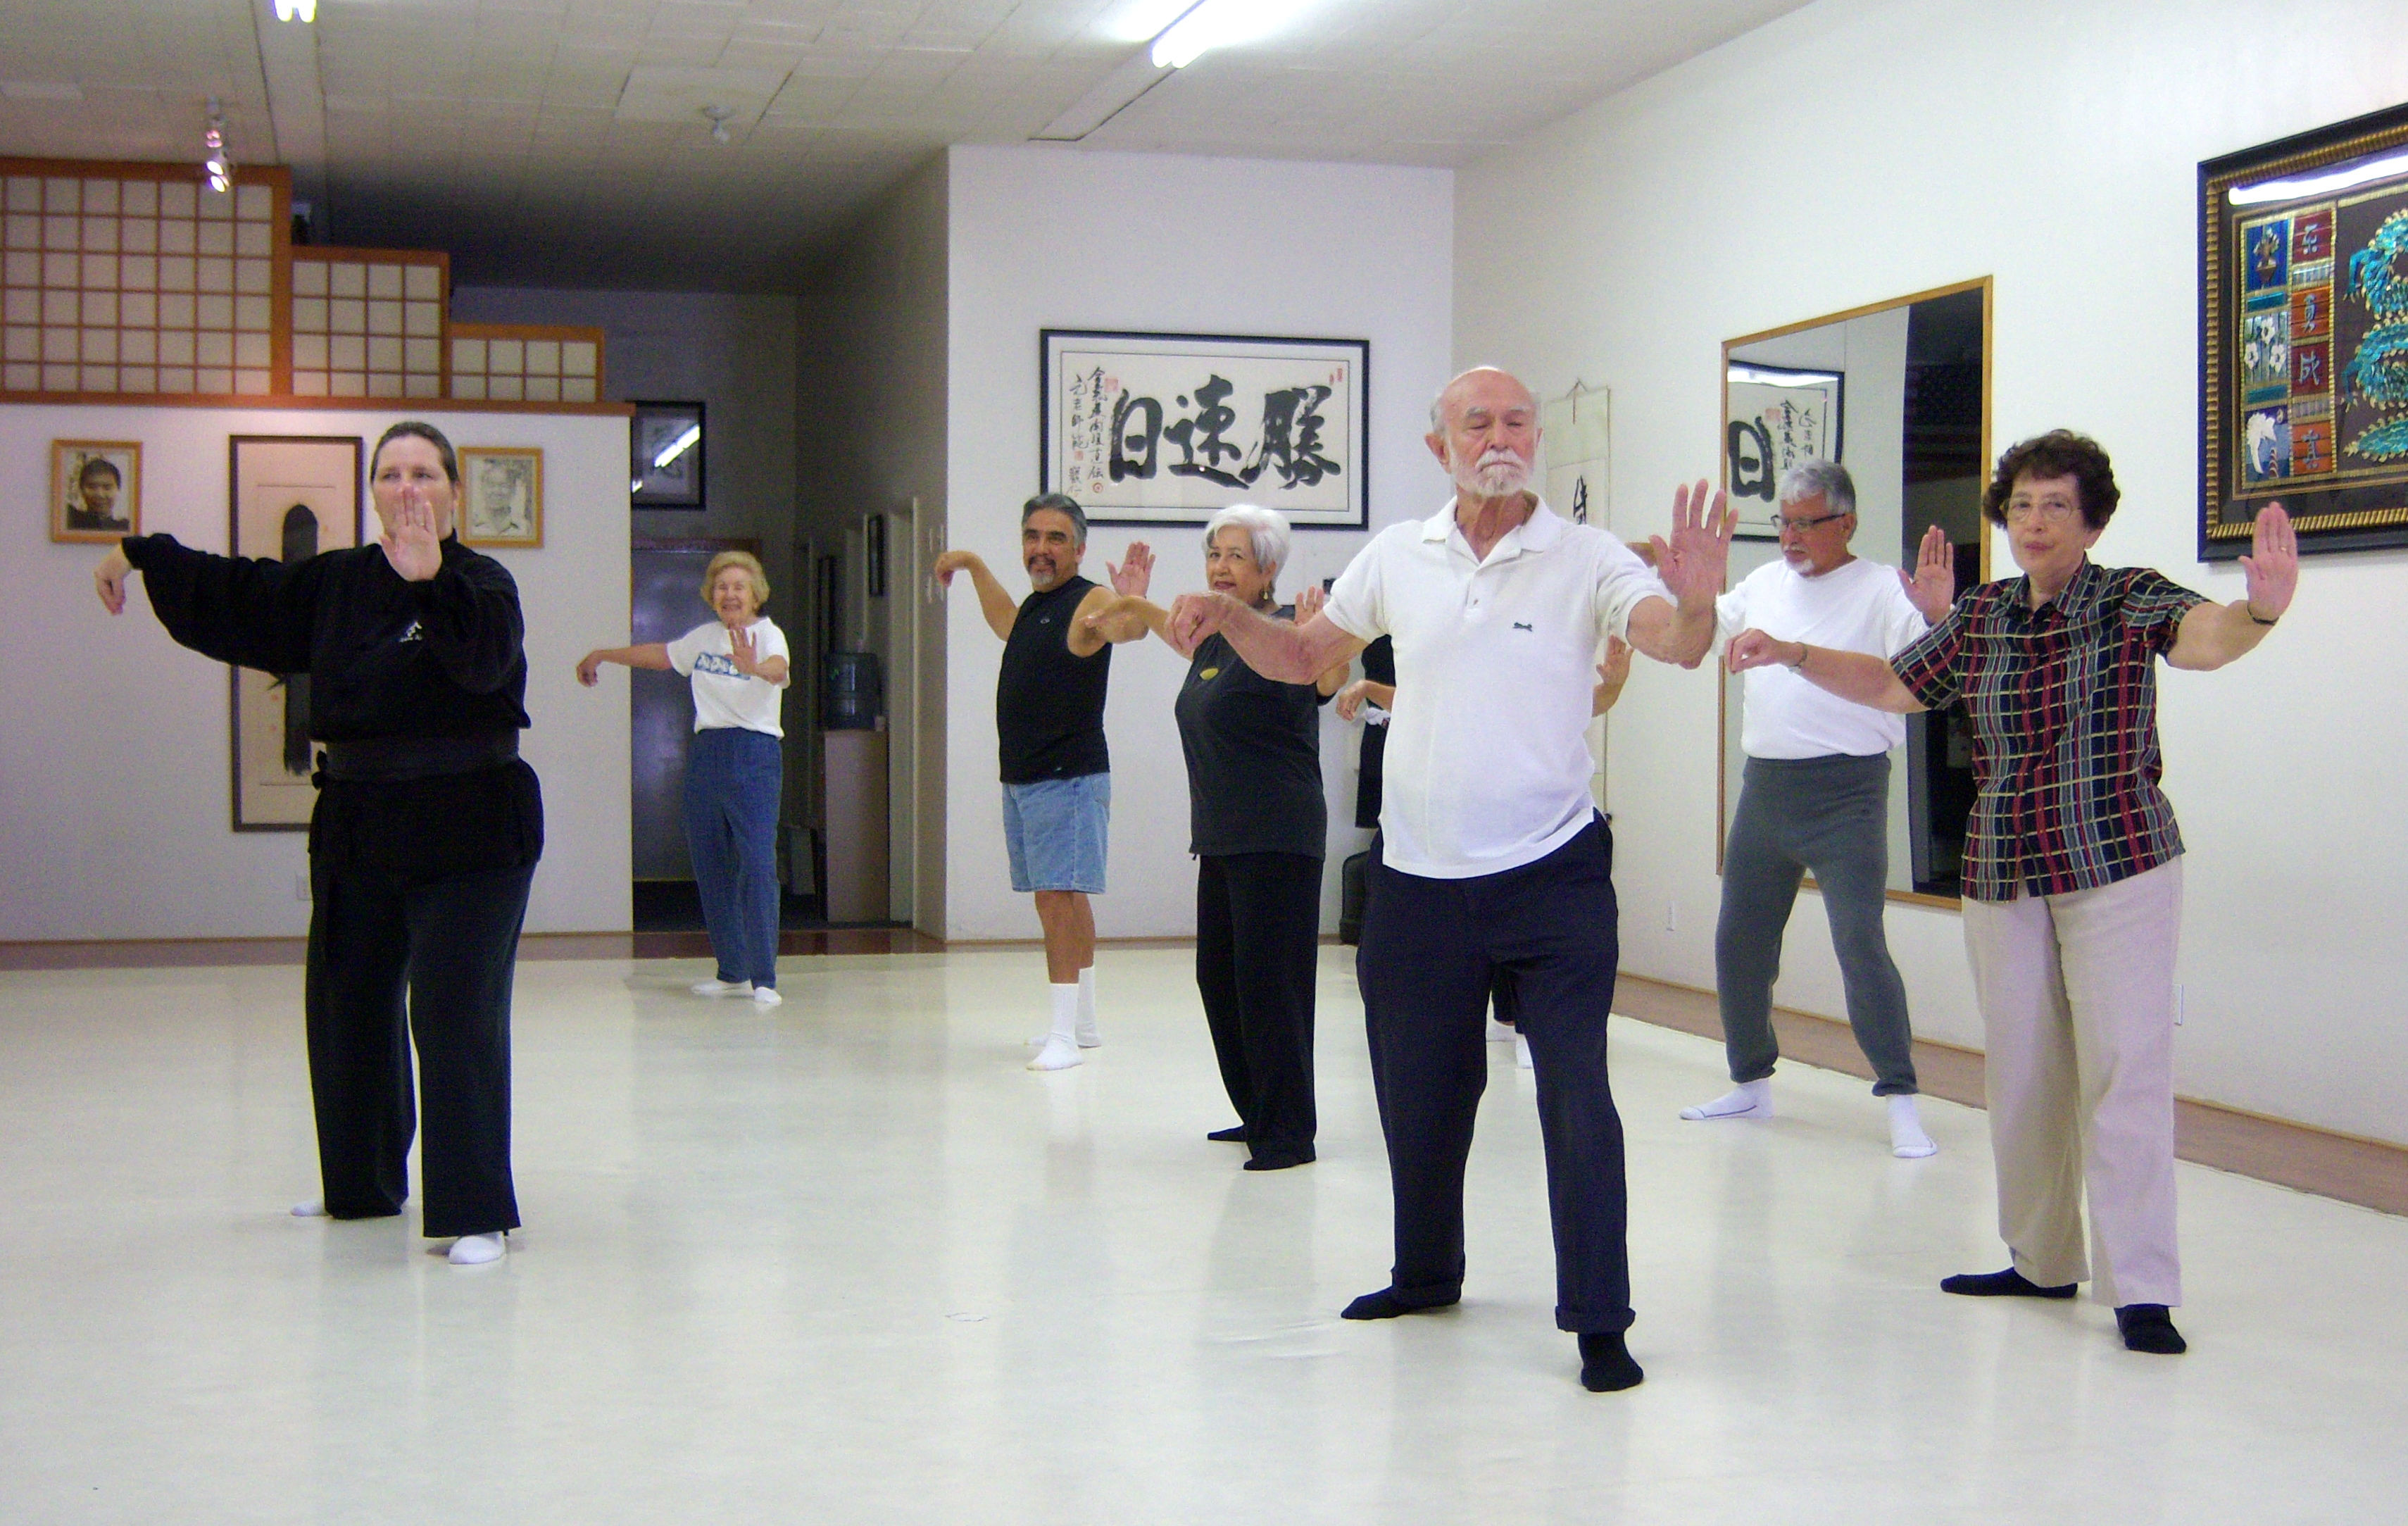 Seniors morning tai chi class.